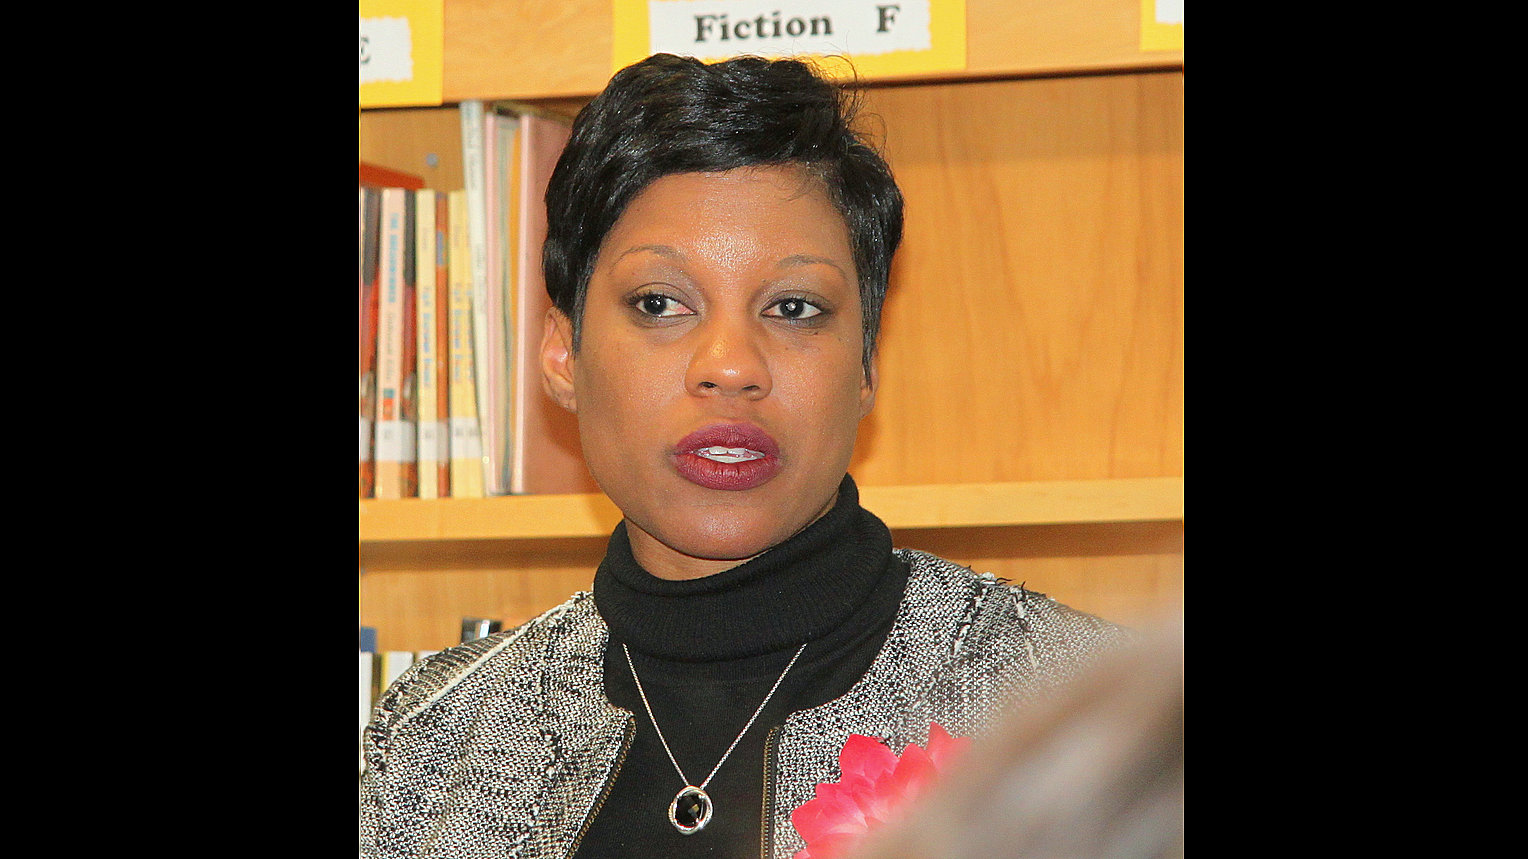 Tisha Edwards when she was Baltimore School's interim CEO in 2014. (Fern Shen)